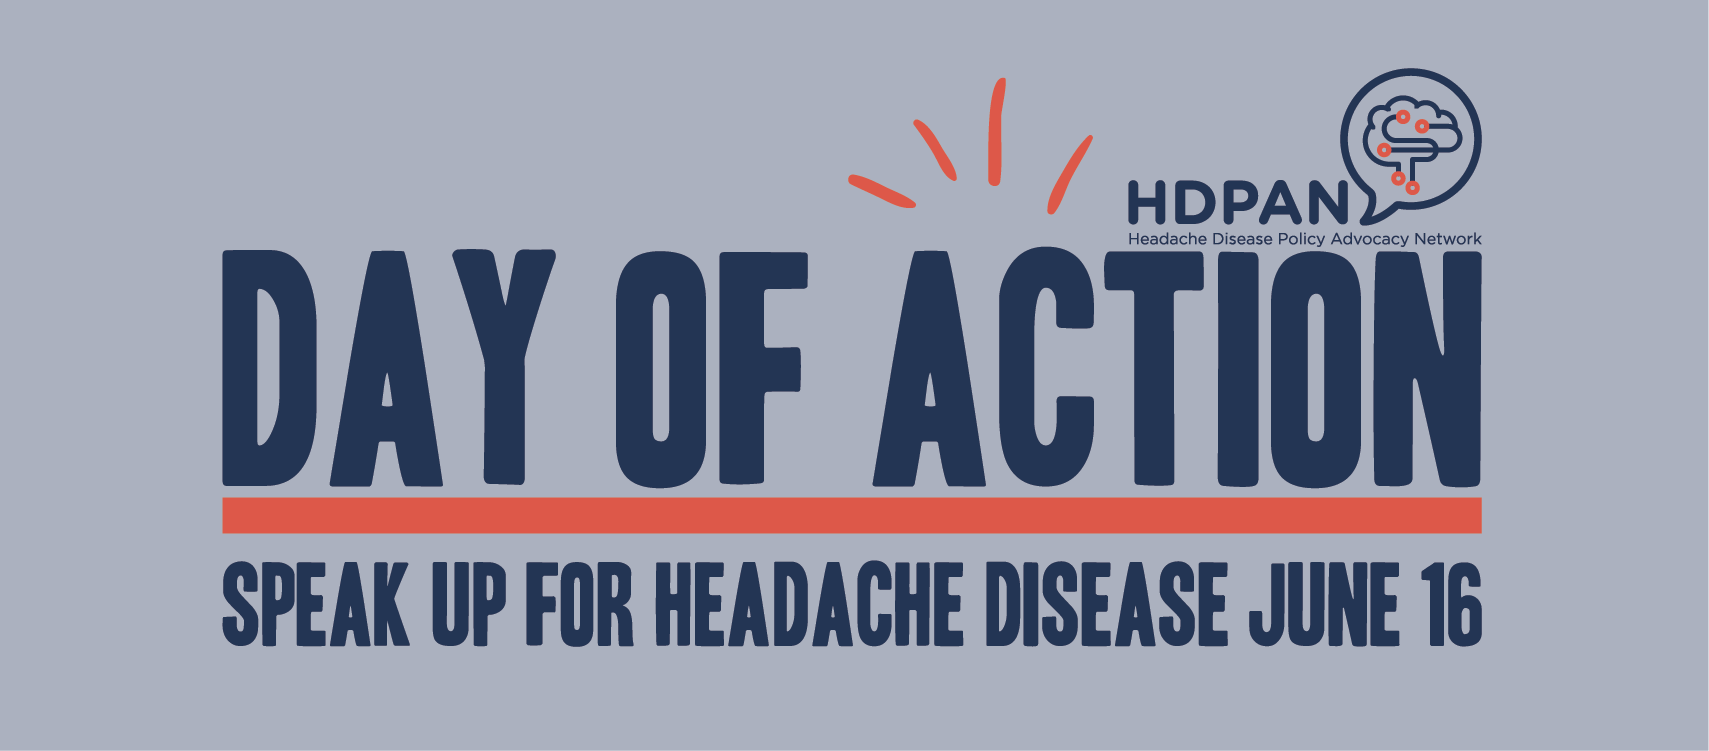 HDPAN Day of Action: Speak Up for Headache Disease June 16